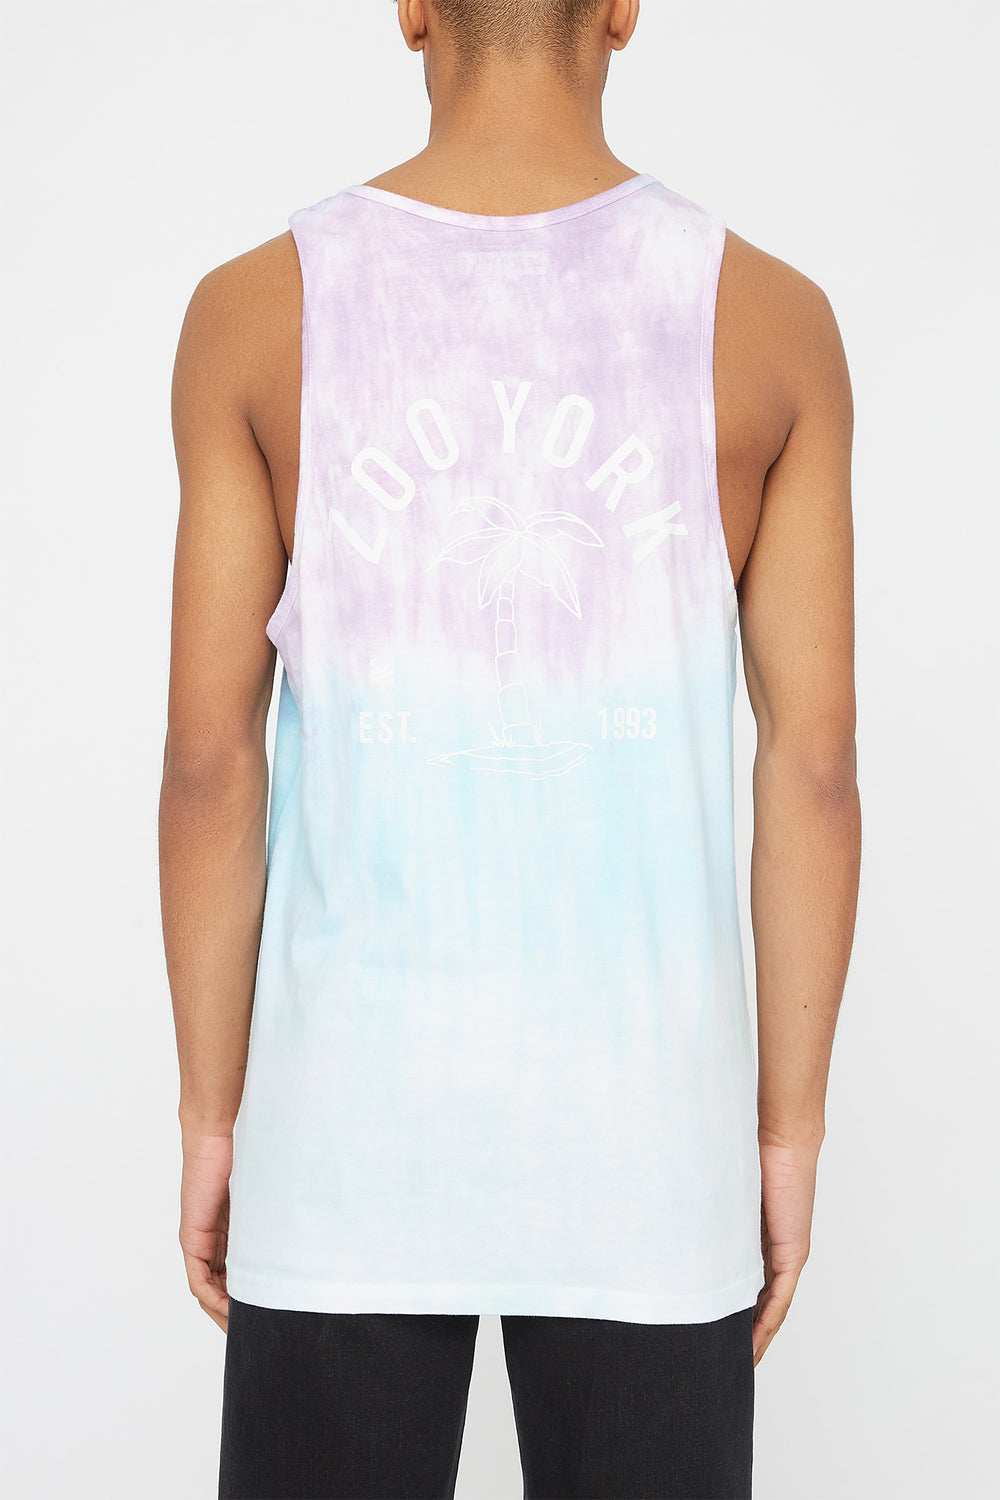 Camisole Palmier Zoo York Homme Violet